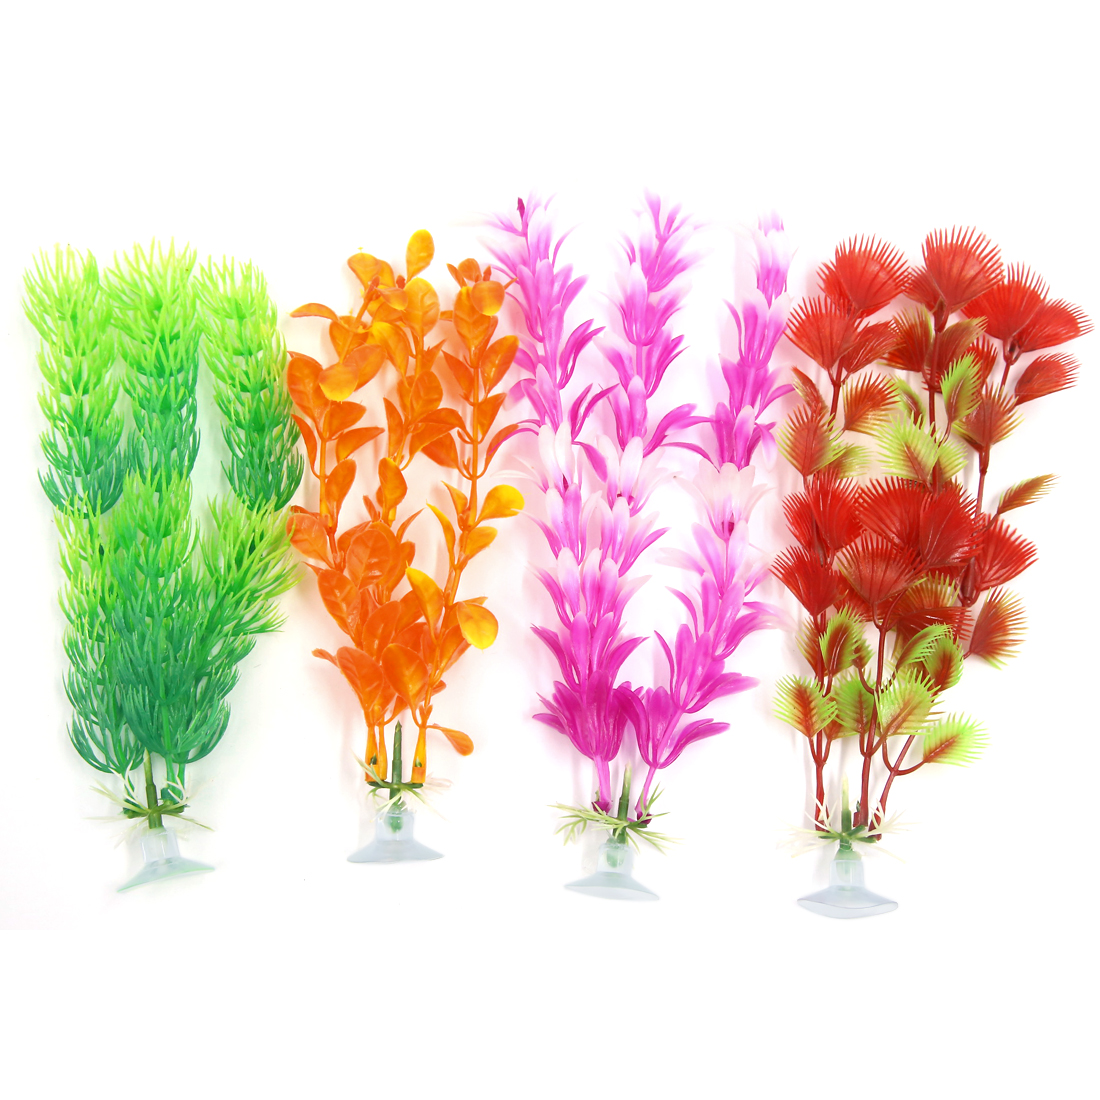 4 Pcs Colorful Aquarium Ornament Plastic Decoration Plant With Suction Cup